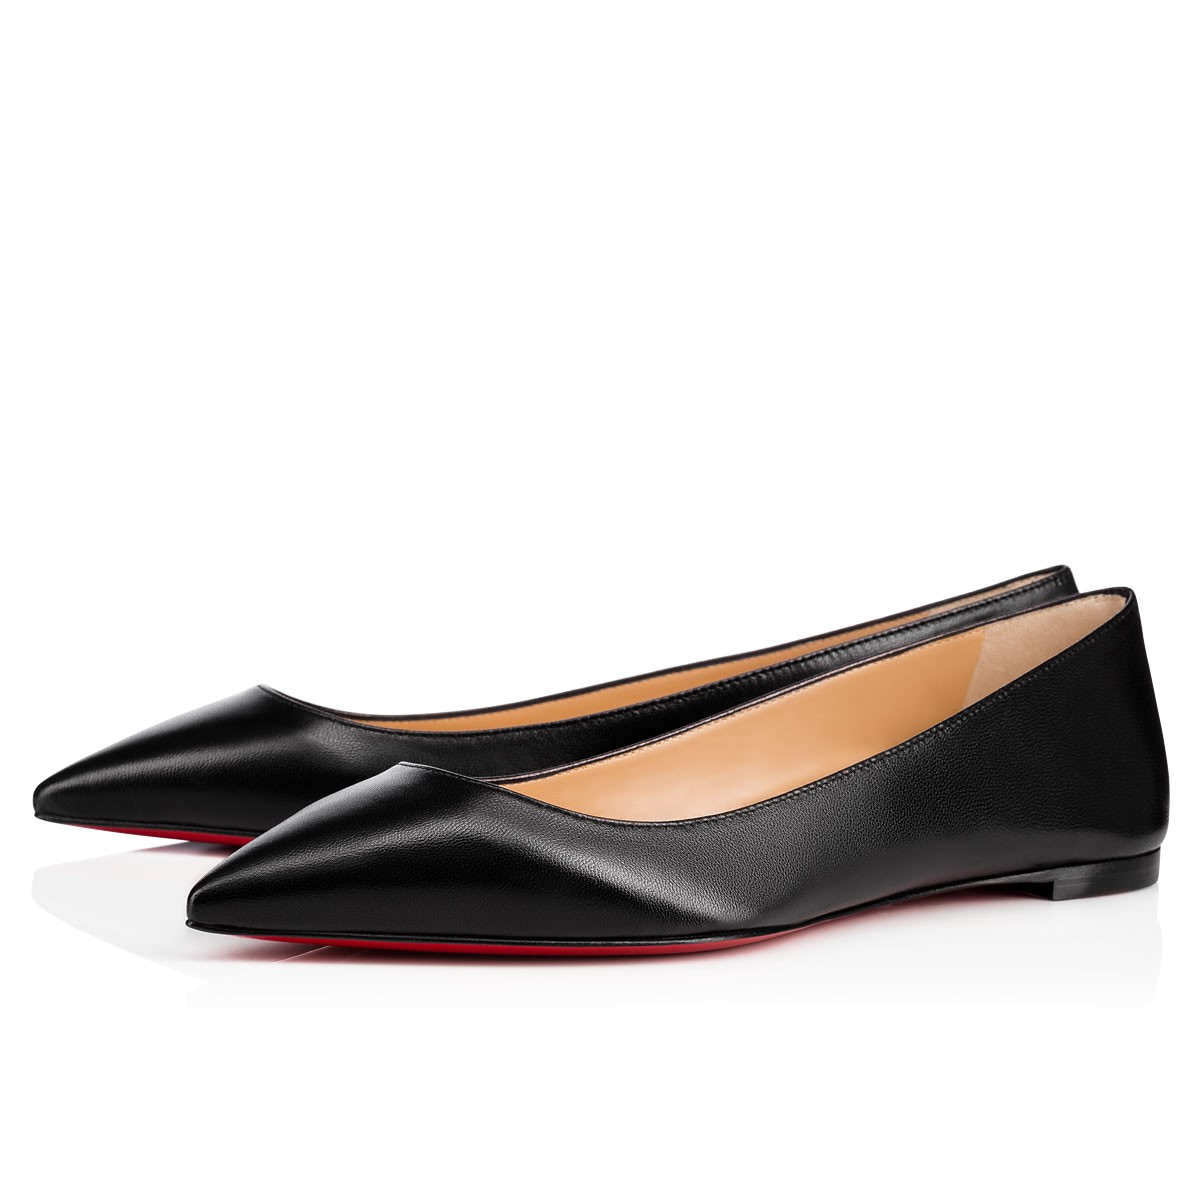 4bec73763ca1 Ballalla Flat Black Leather - Women Shoes - Christian Louboutin